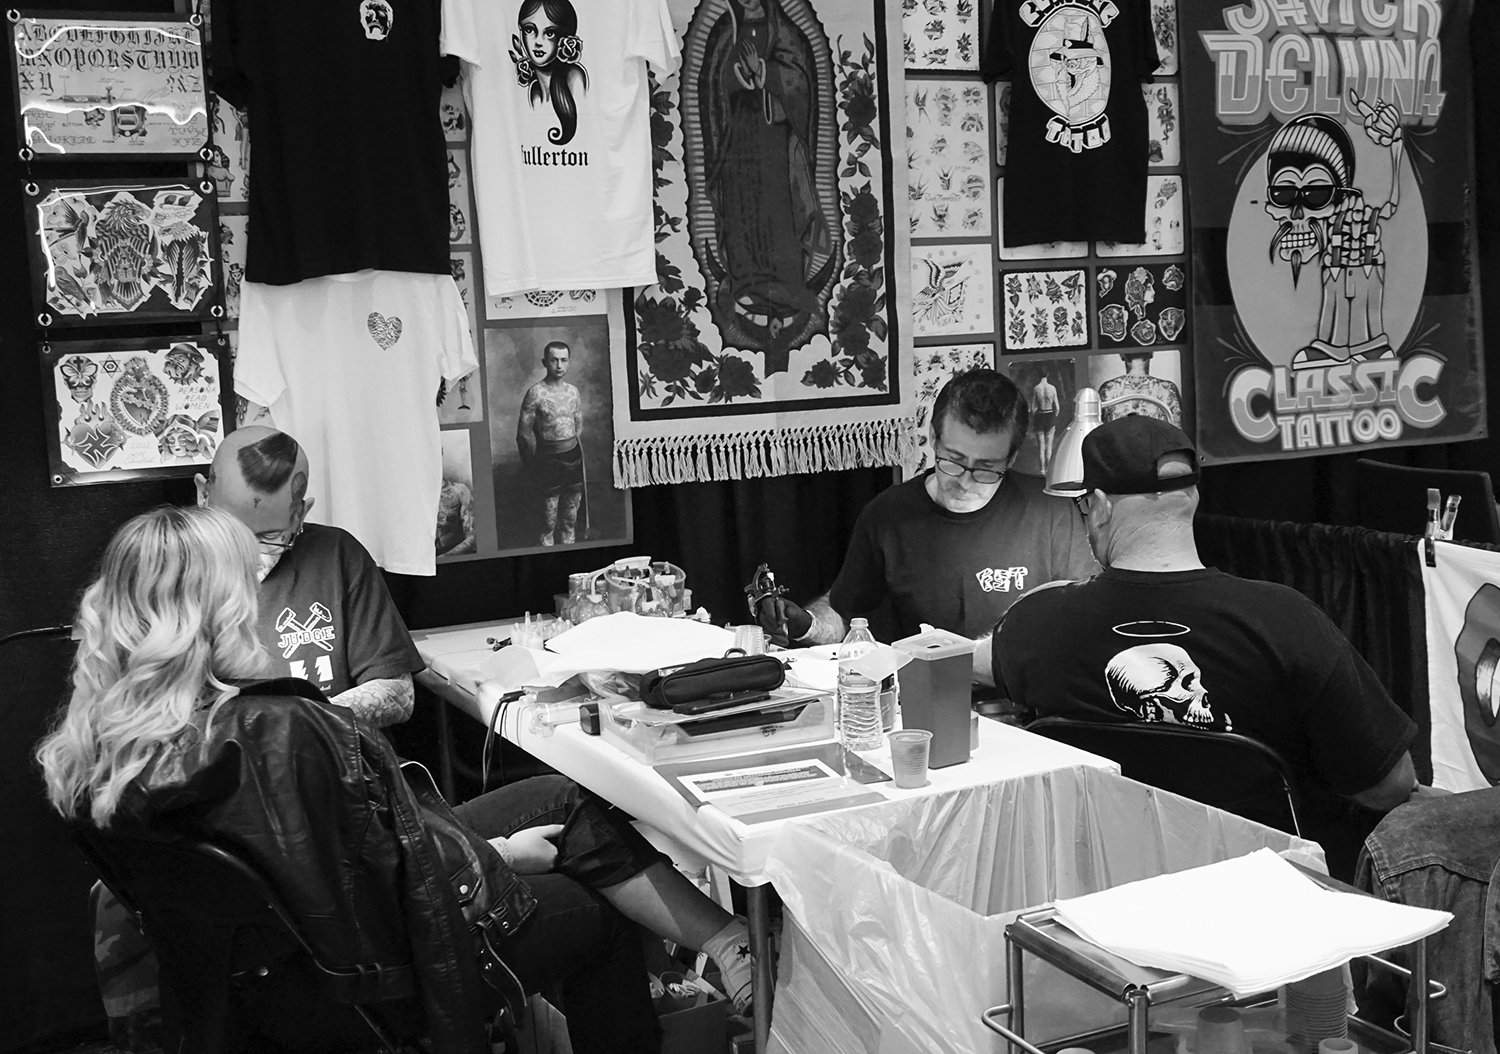 LINDSEY H. CARMICHAEL CTF and tim hendricks (miami ink) tattooing at expo